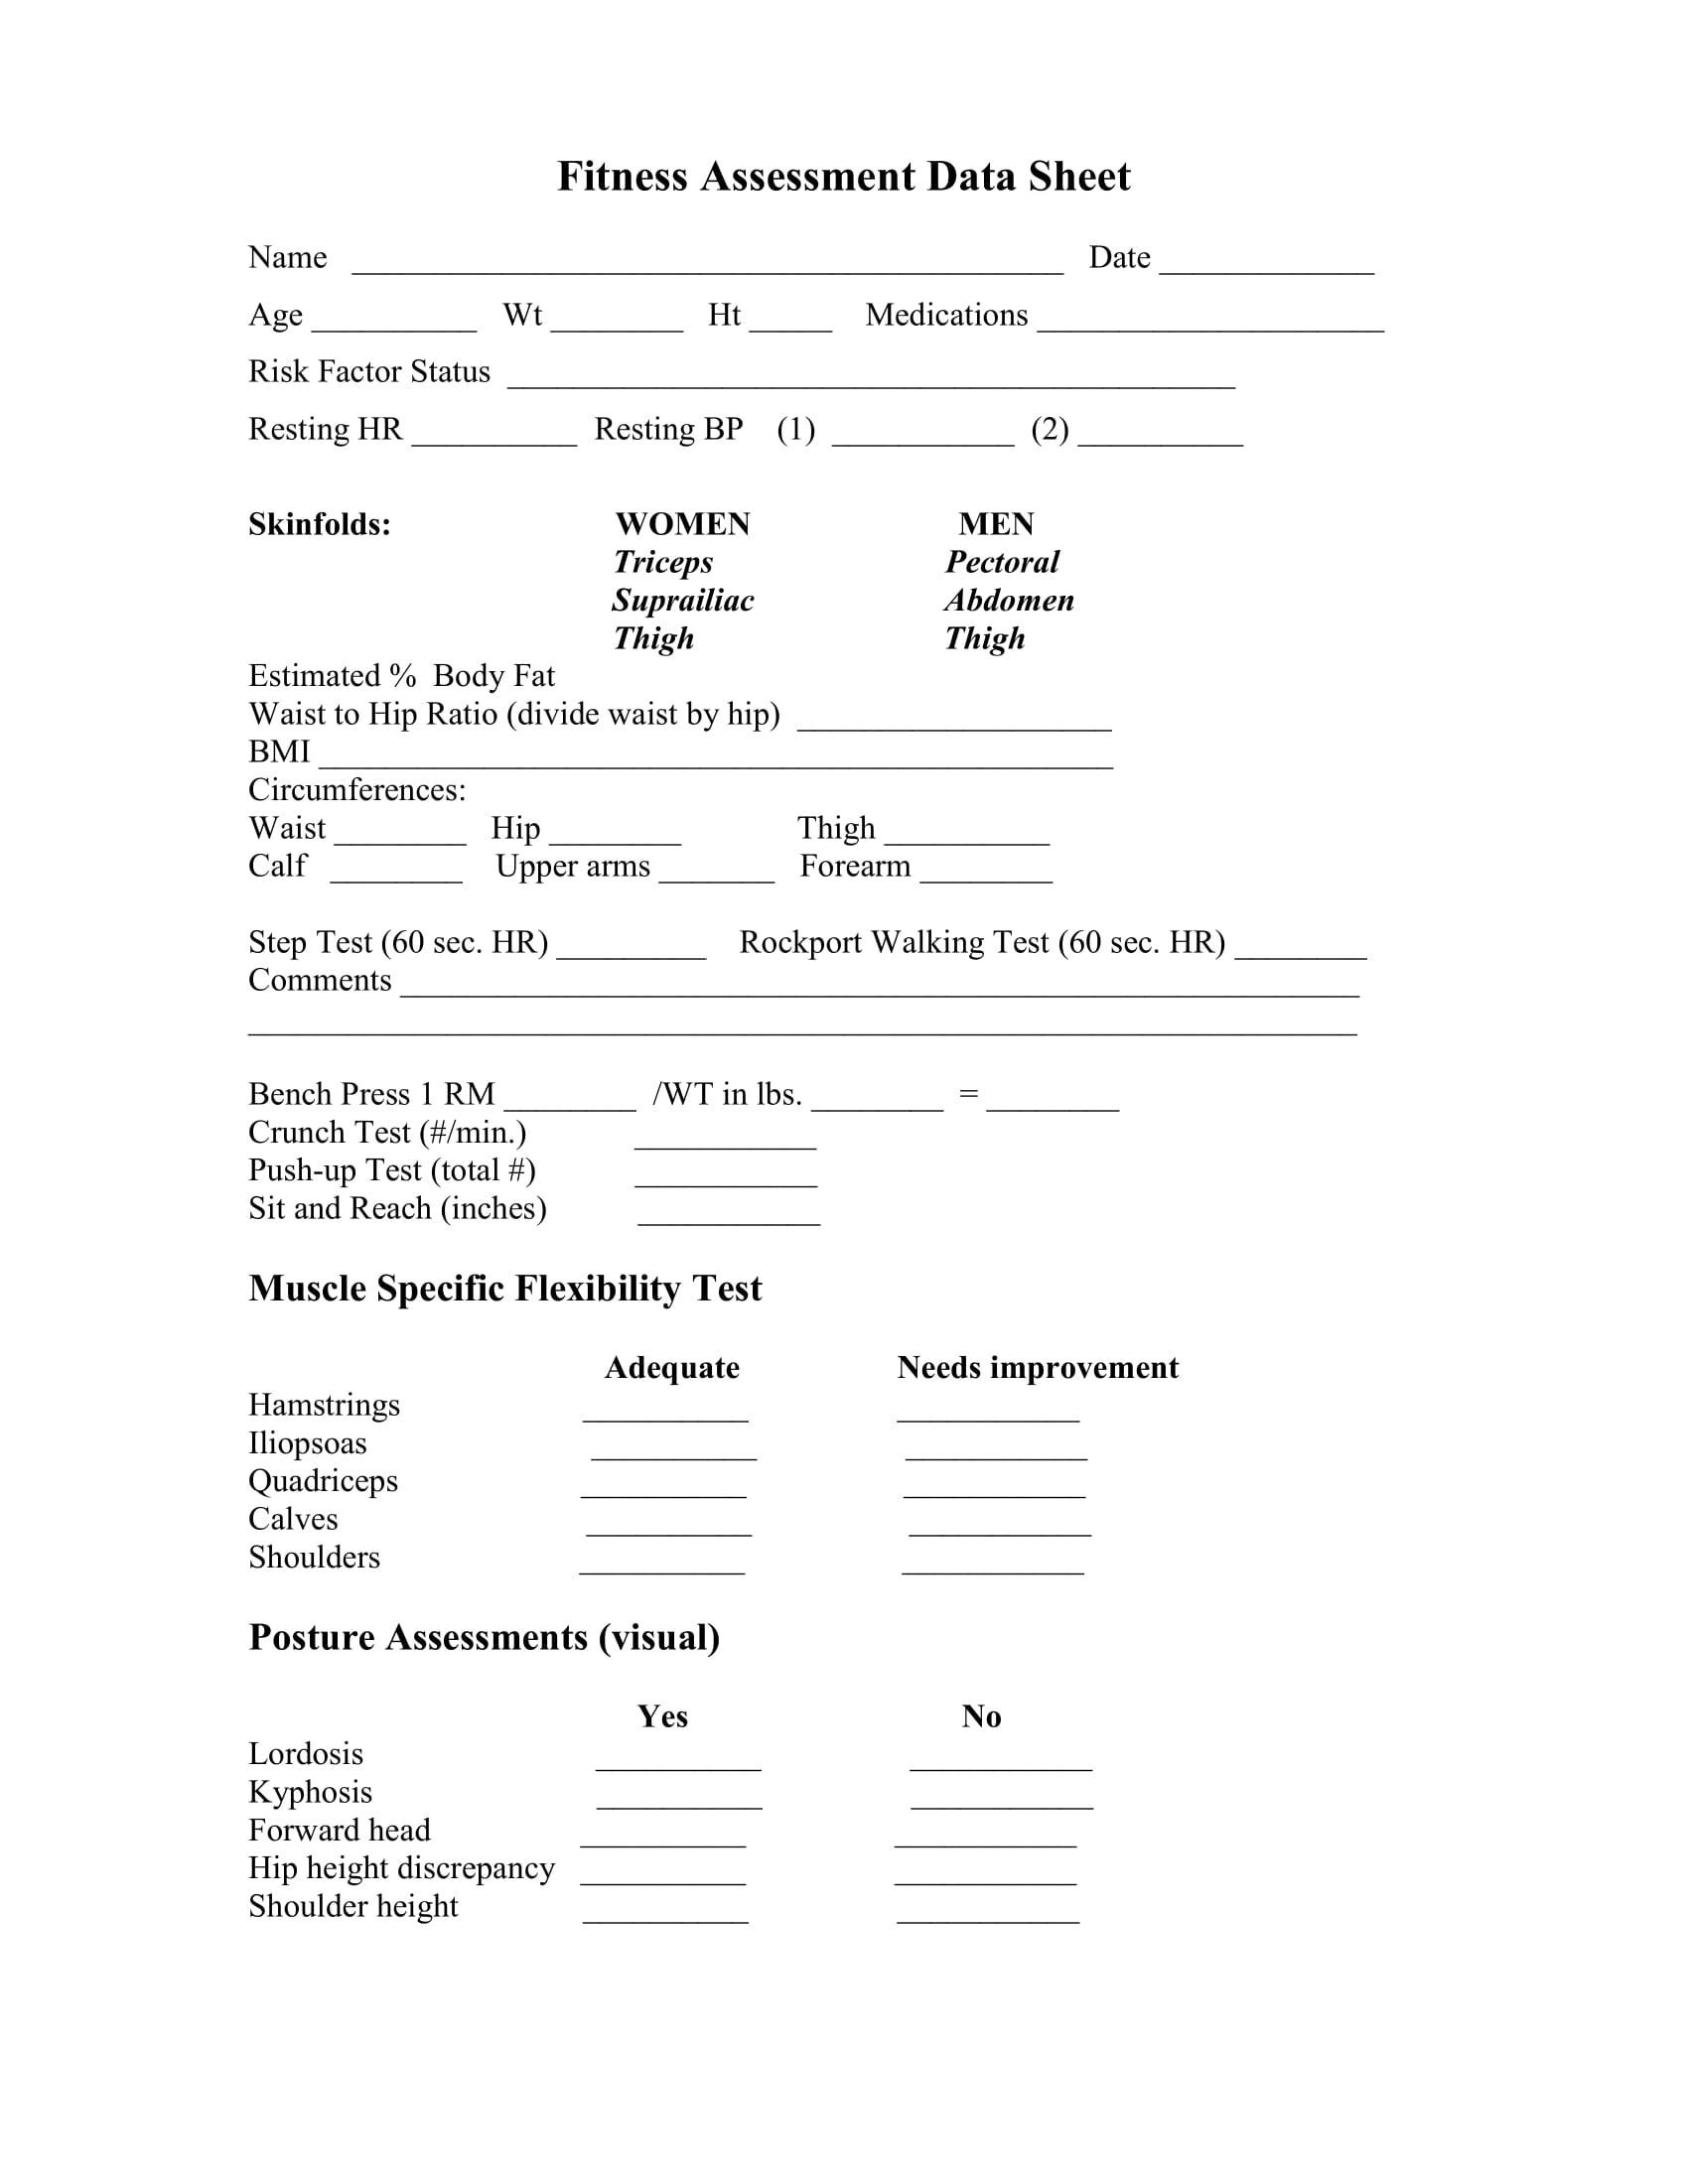 004 Exceptional Medical History Form Template For Personal Training Photo Full